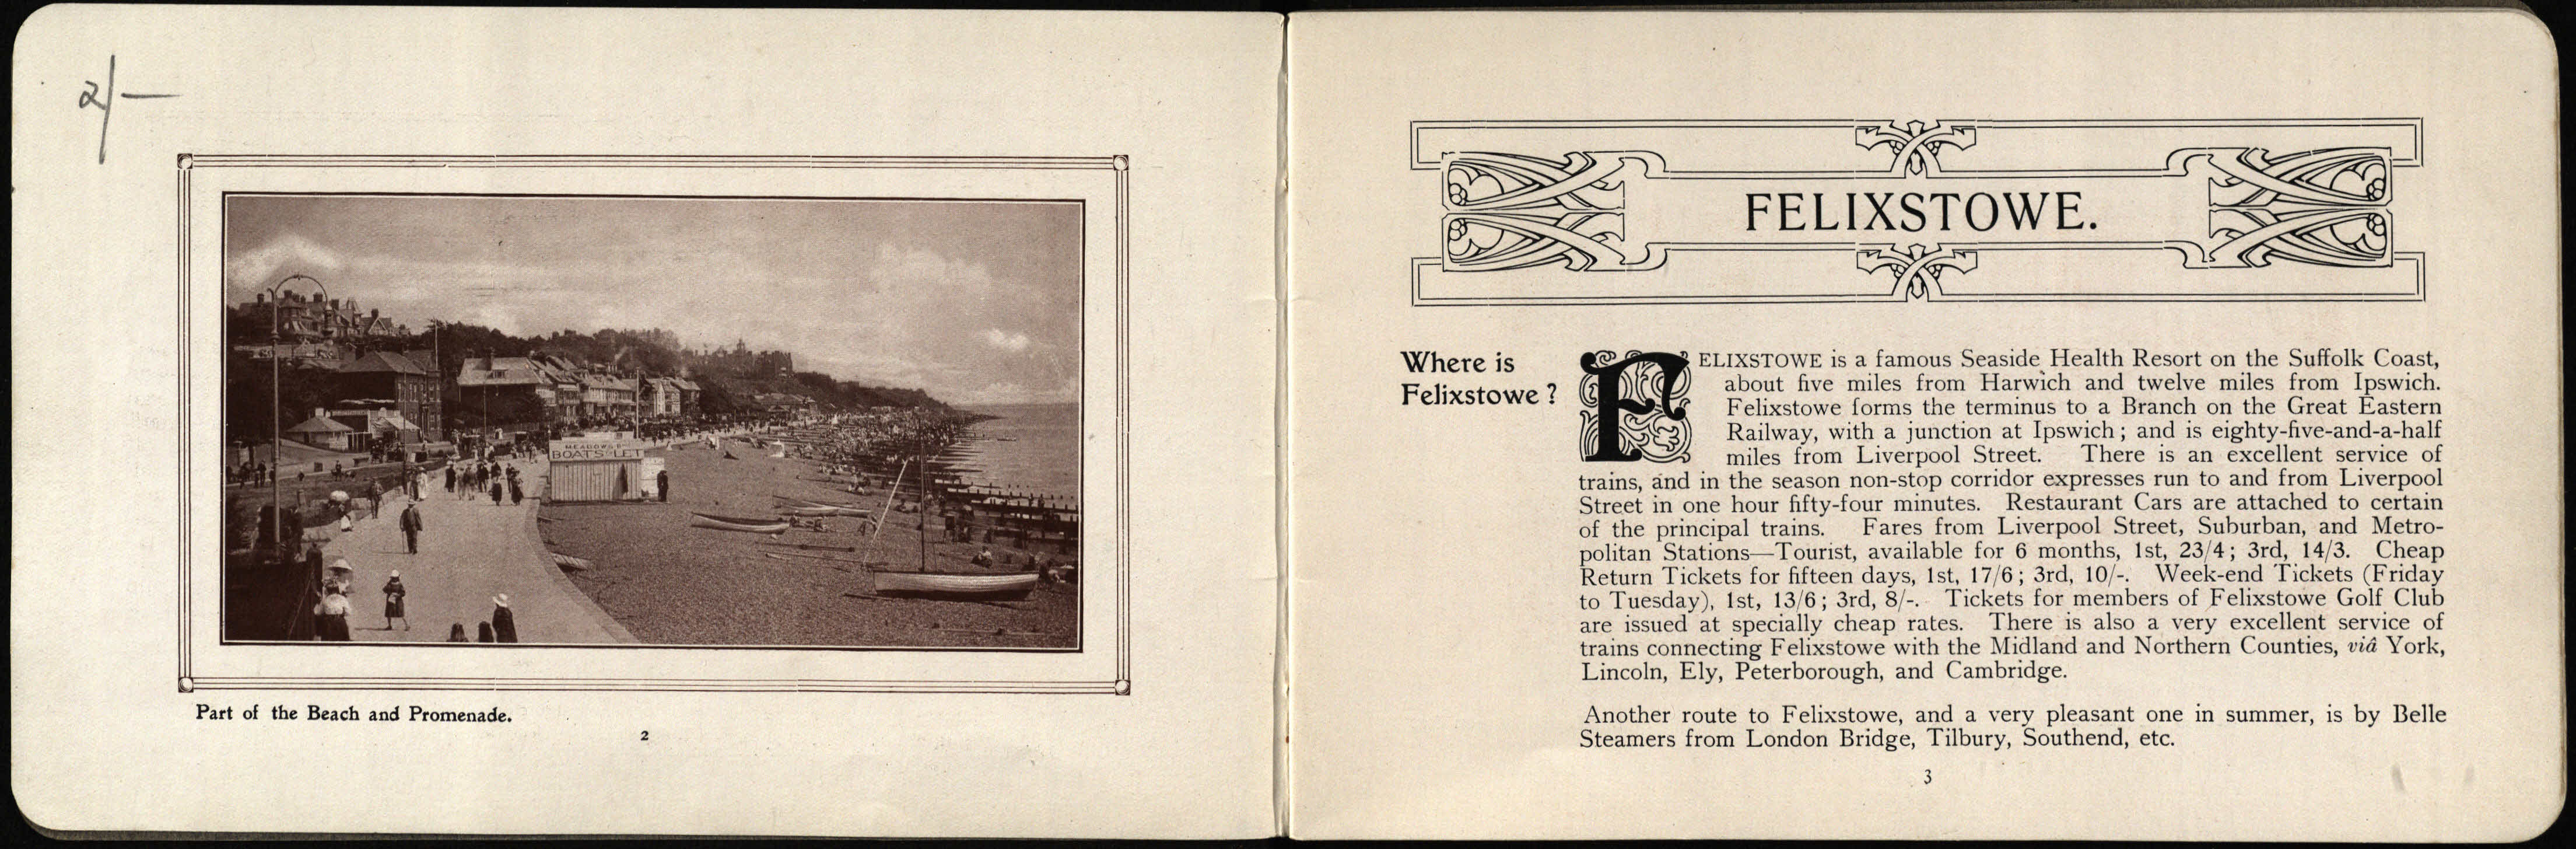 Sunny Felixstowe, queen of the east coast - Booklet c1913. We also have a version in French.